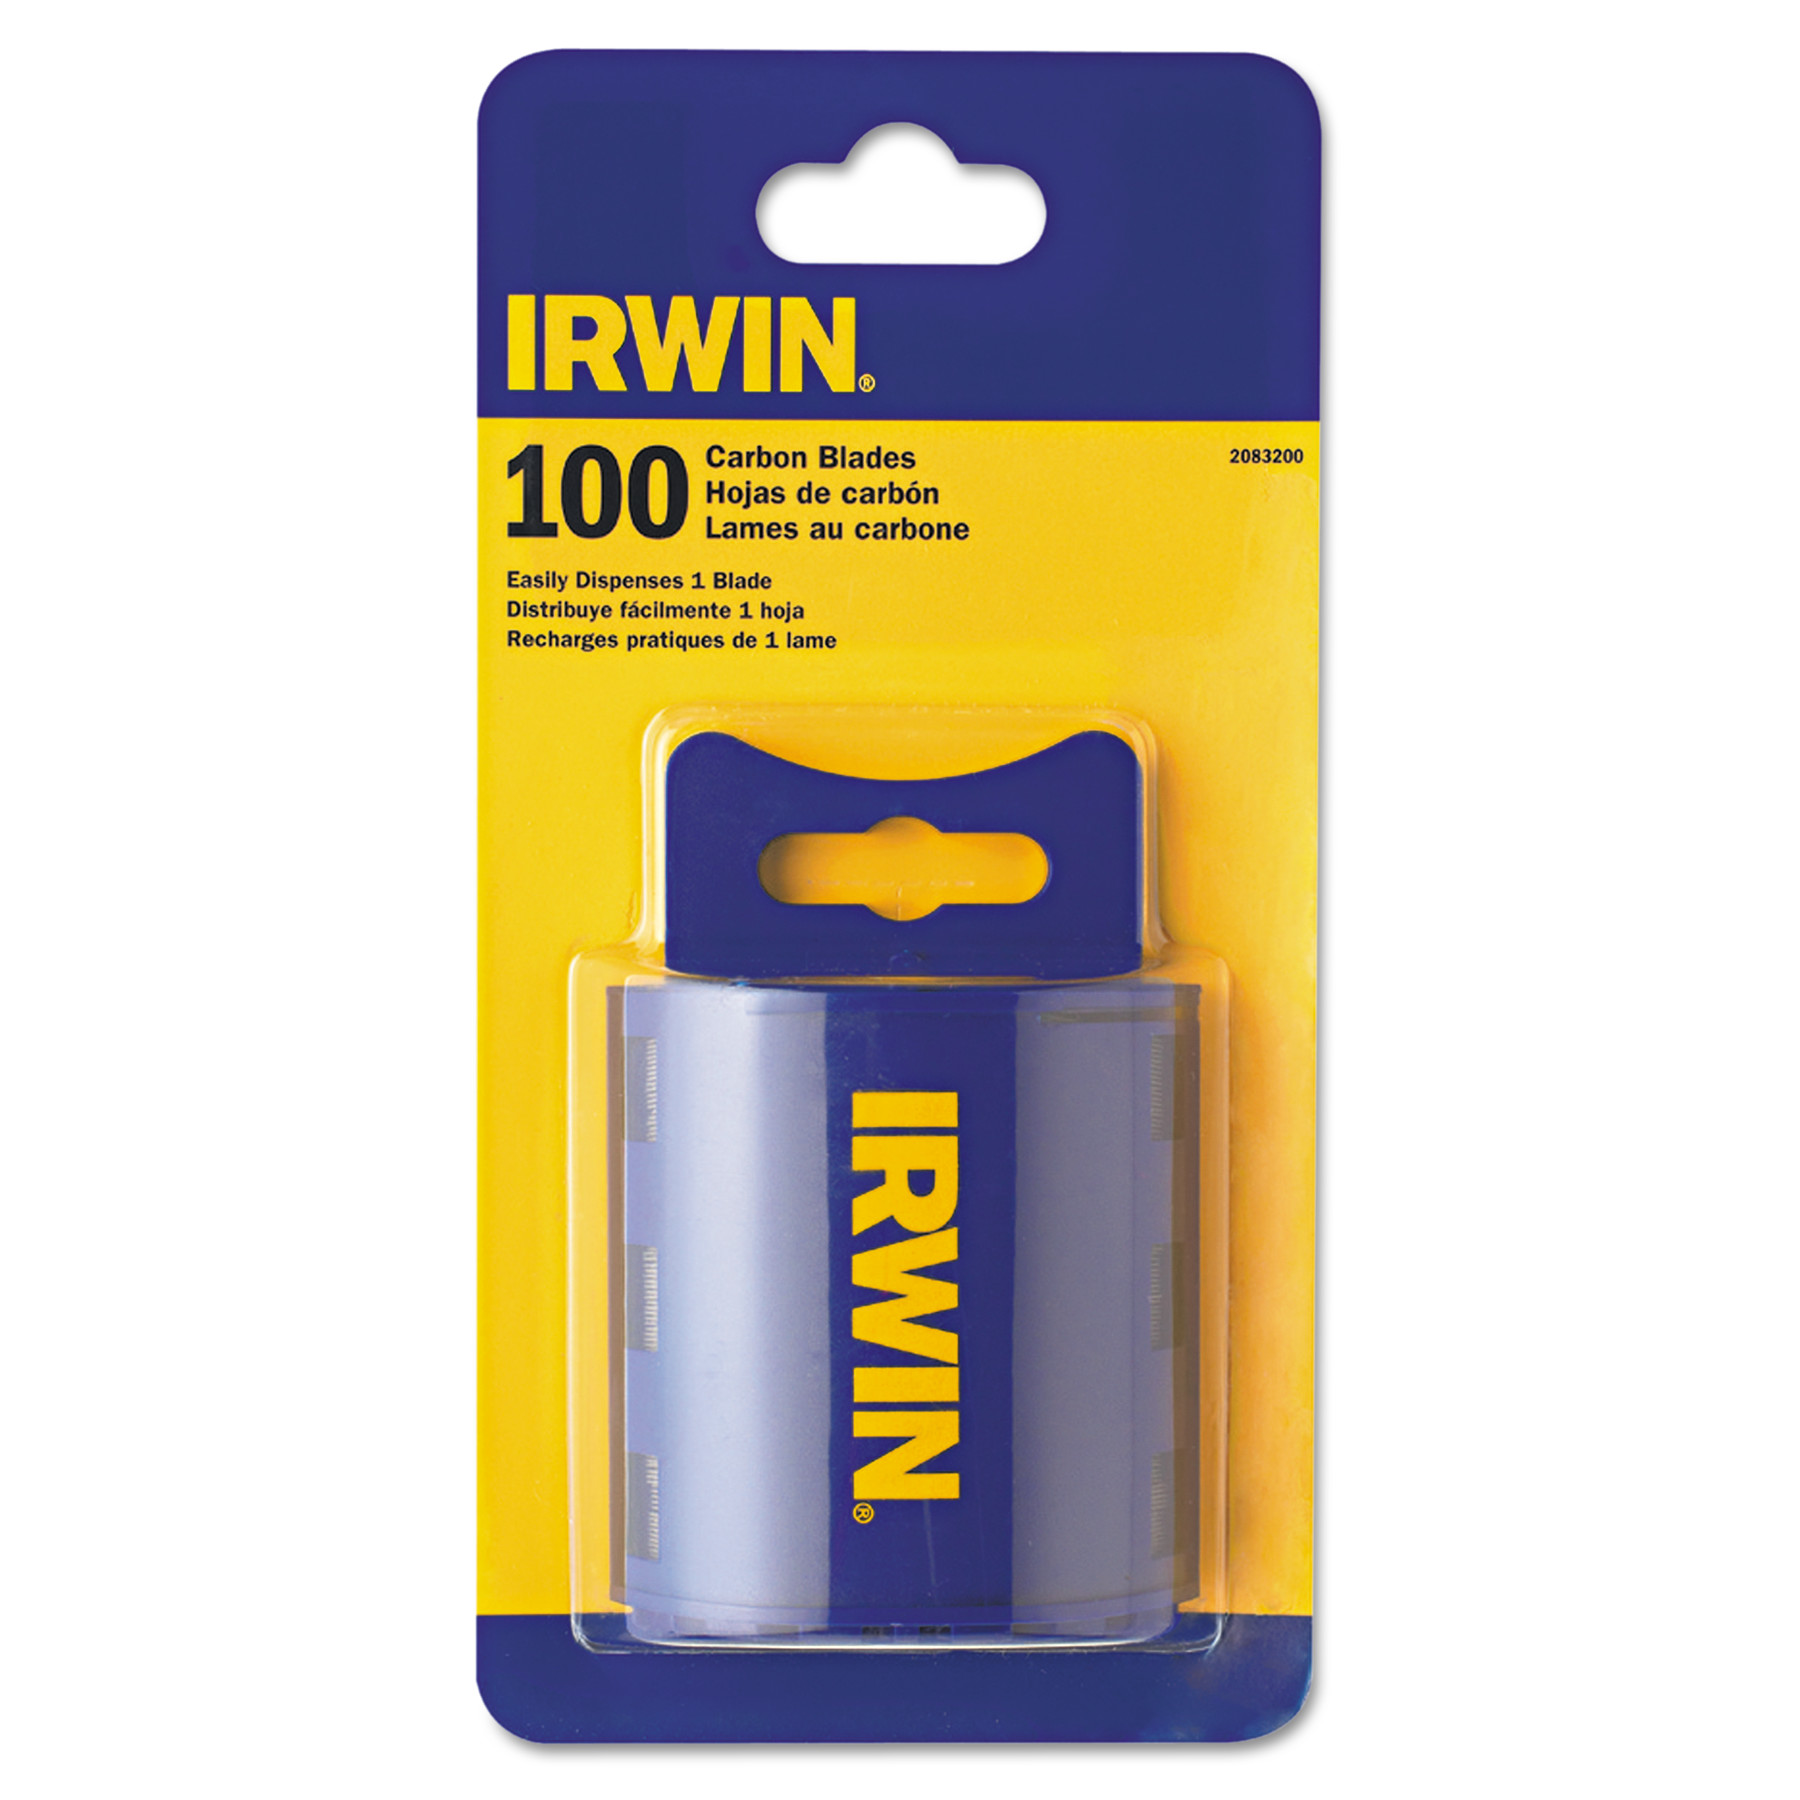 IRWIN Utility Knife Carbon Standard Utility Blades 100 Count